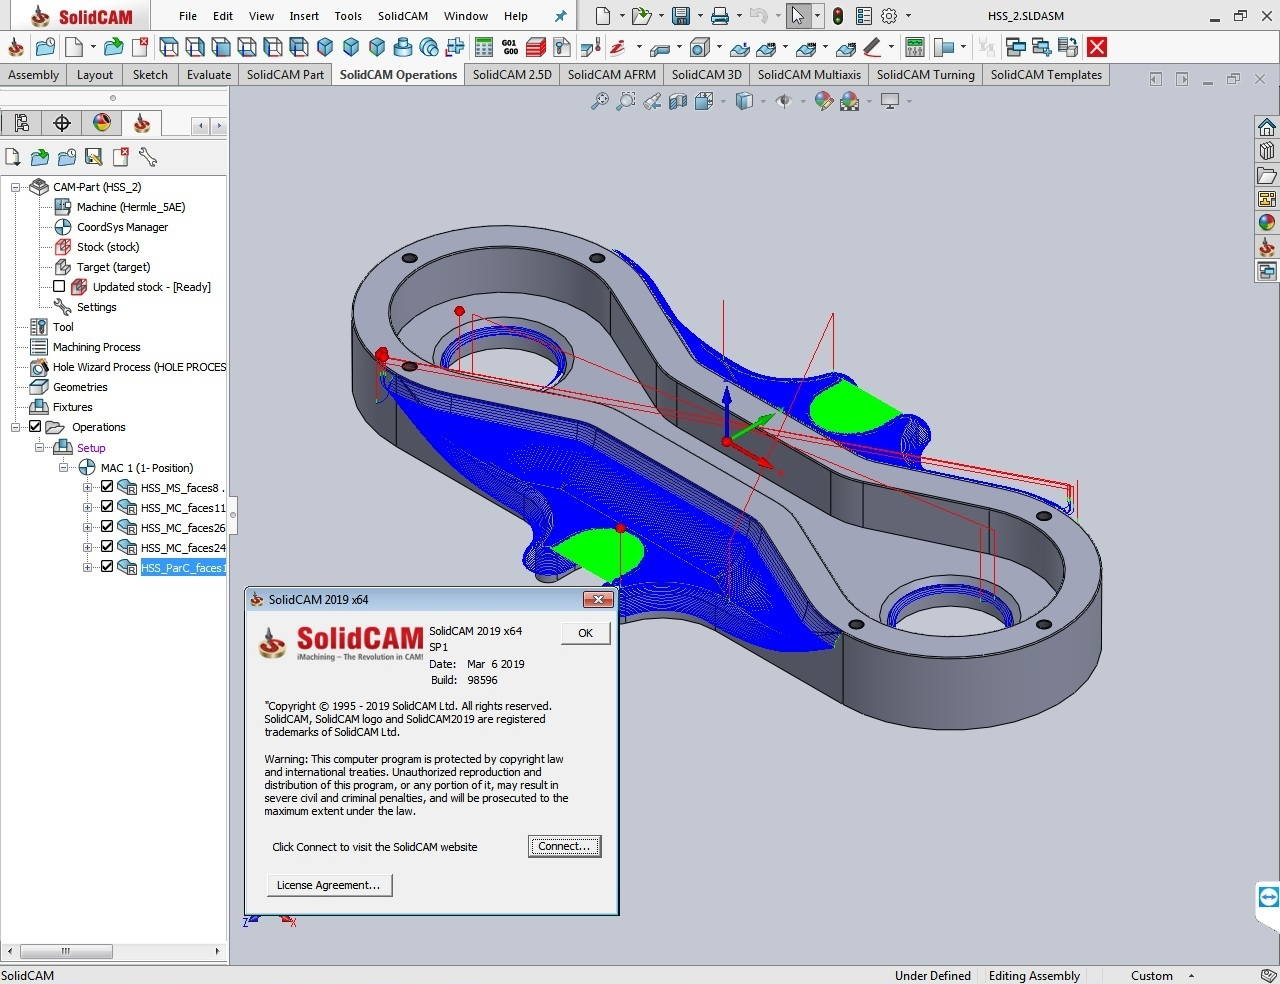 Download SolidCAMCAD 2019 SP1 Standalone Multilang x64 full license